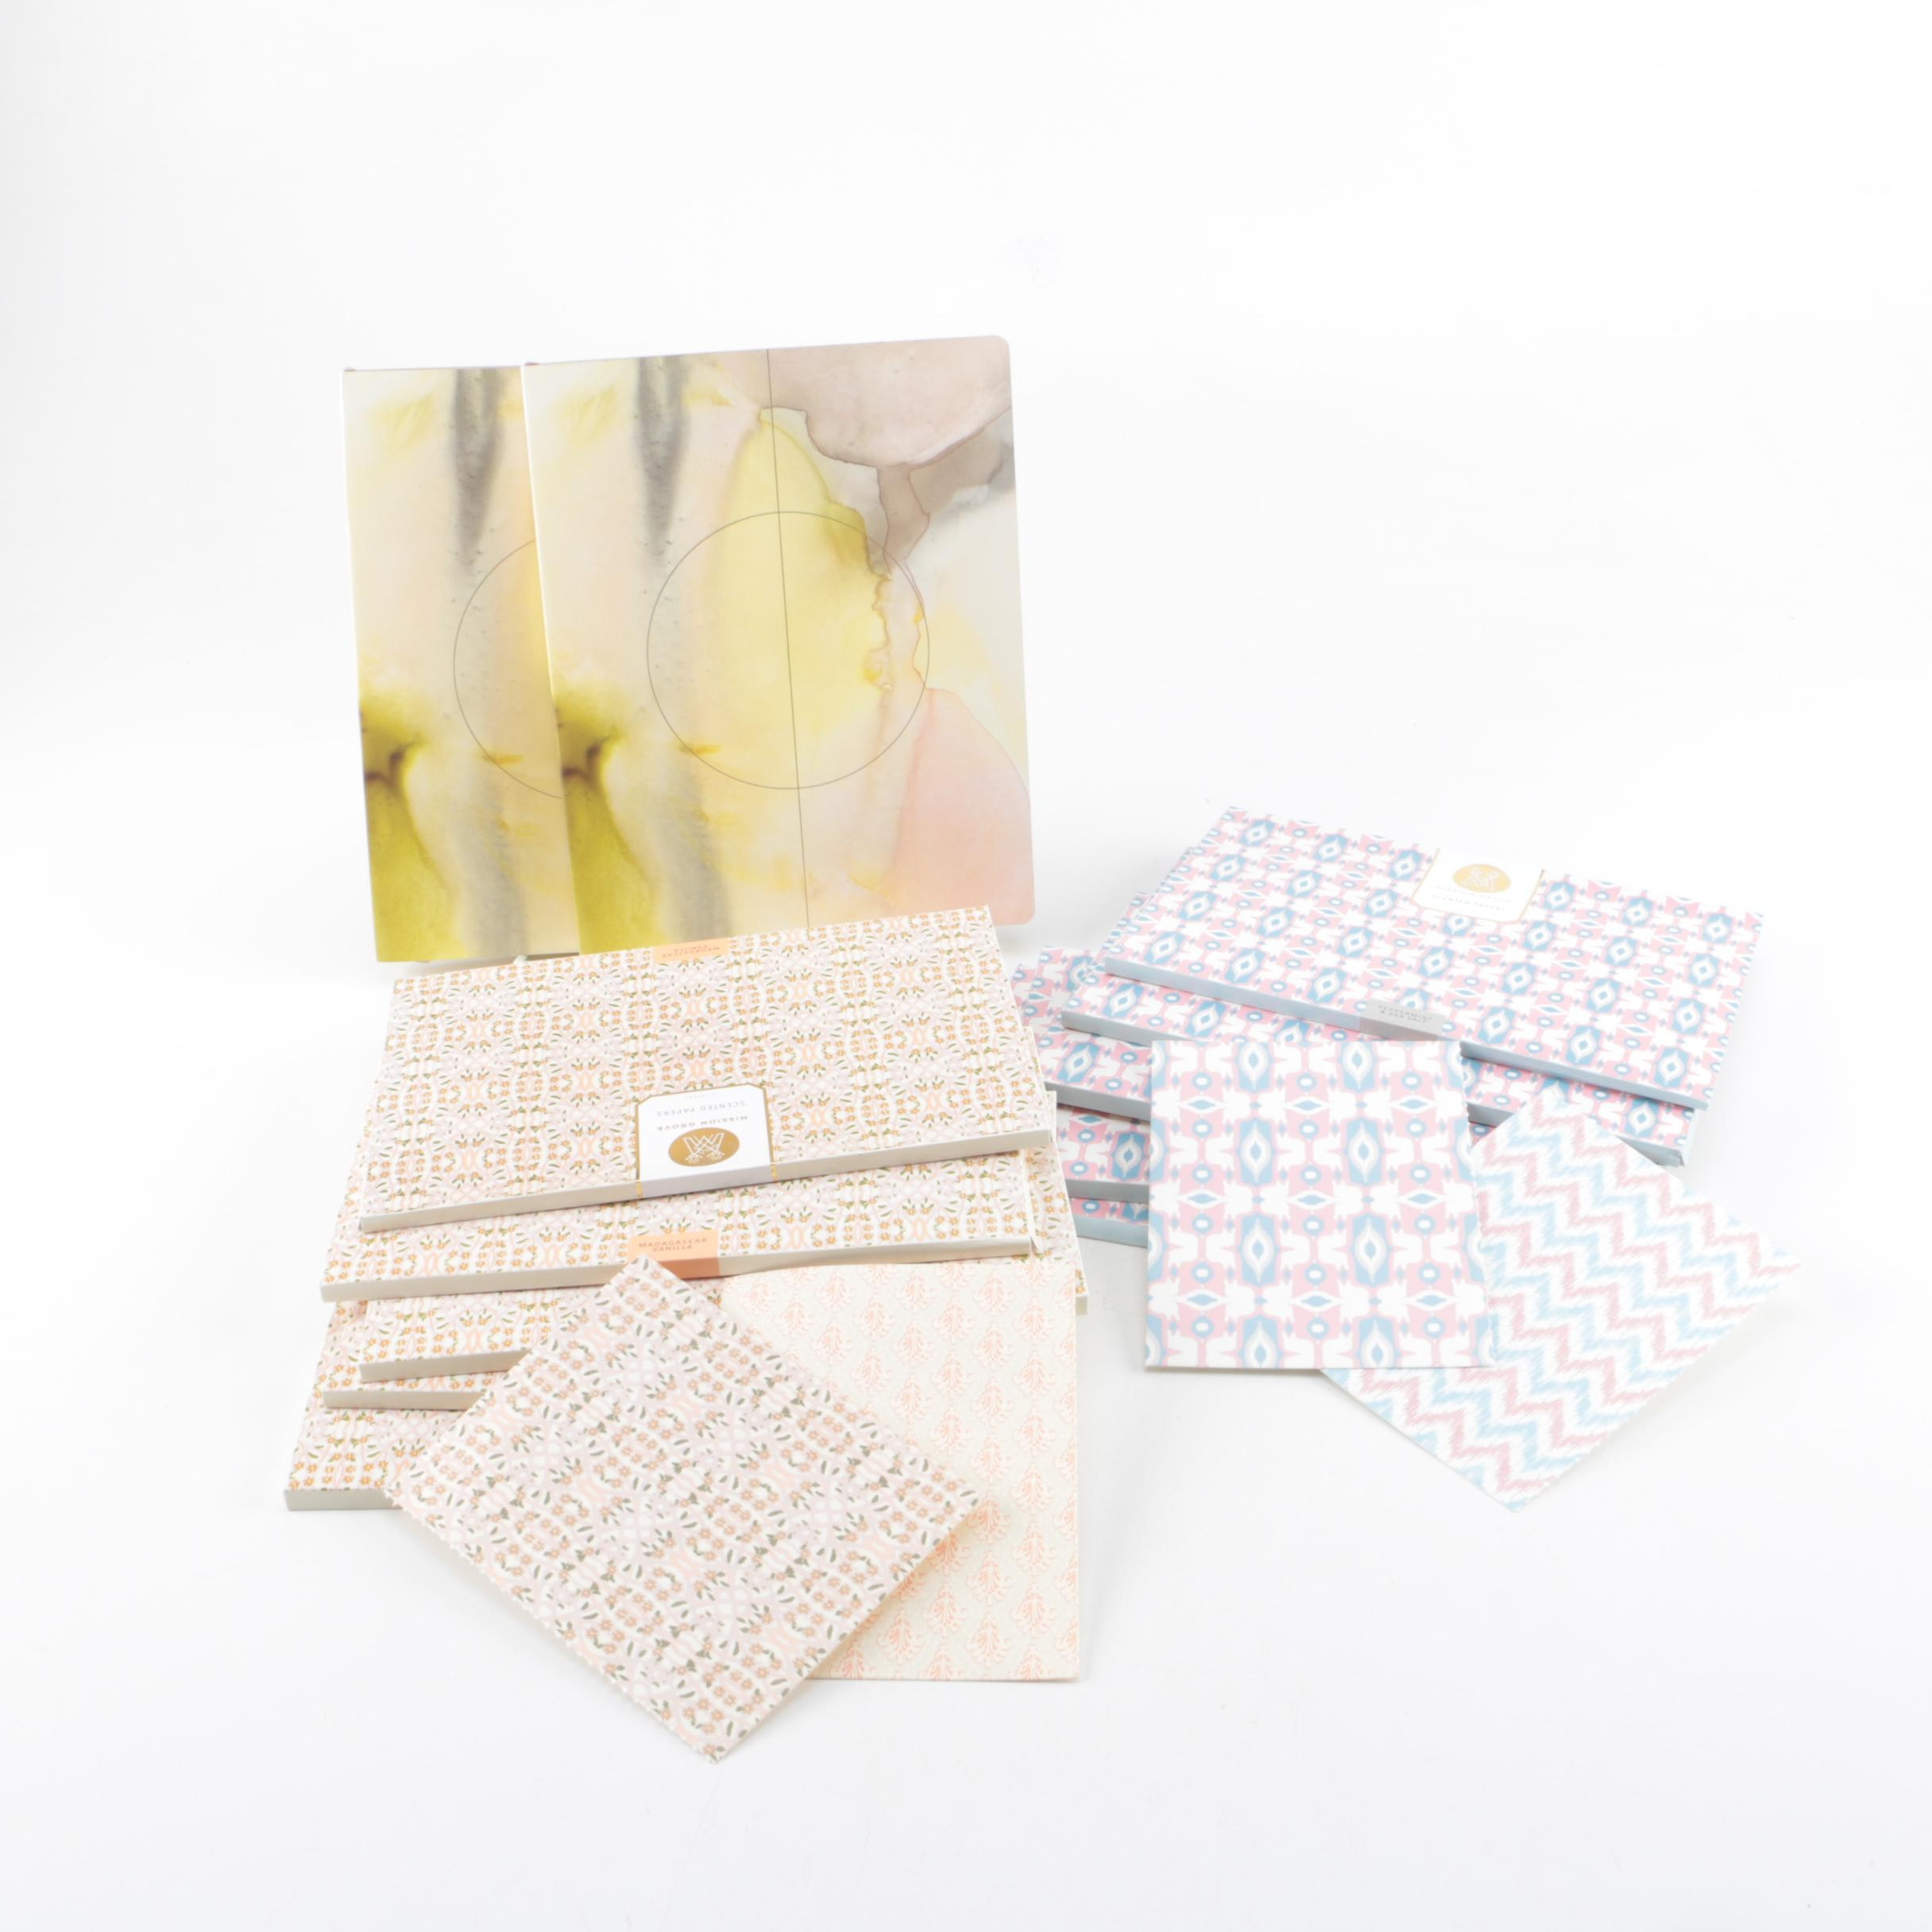 Mission Grove Scented Papers and Journals by Fringe